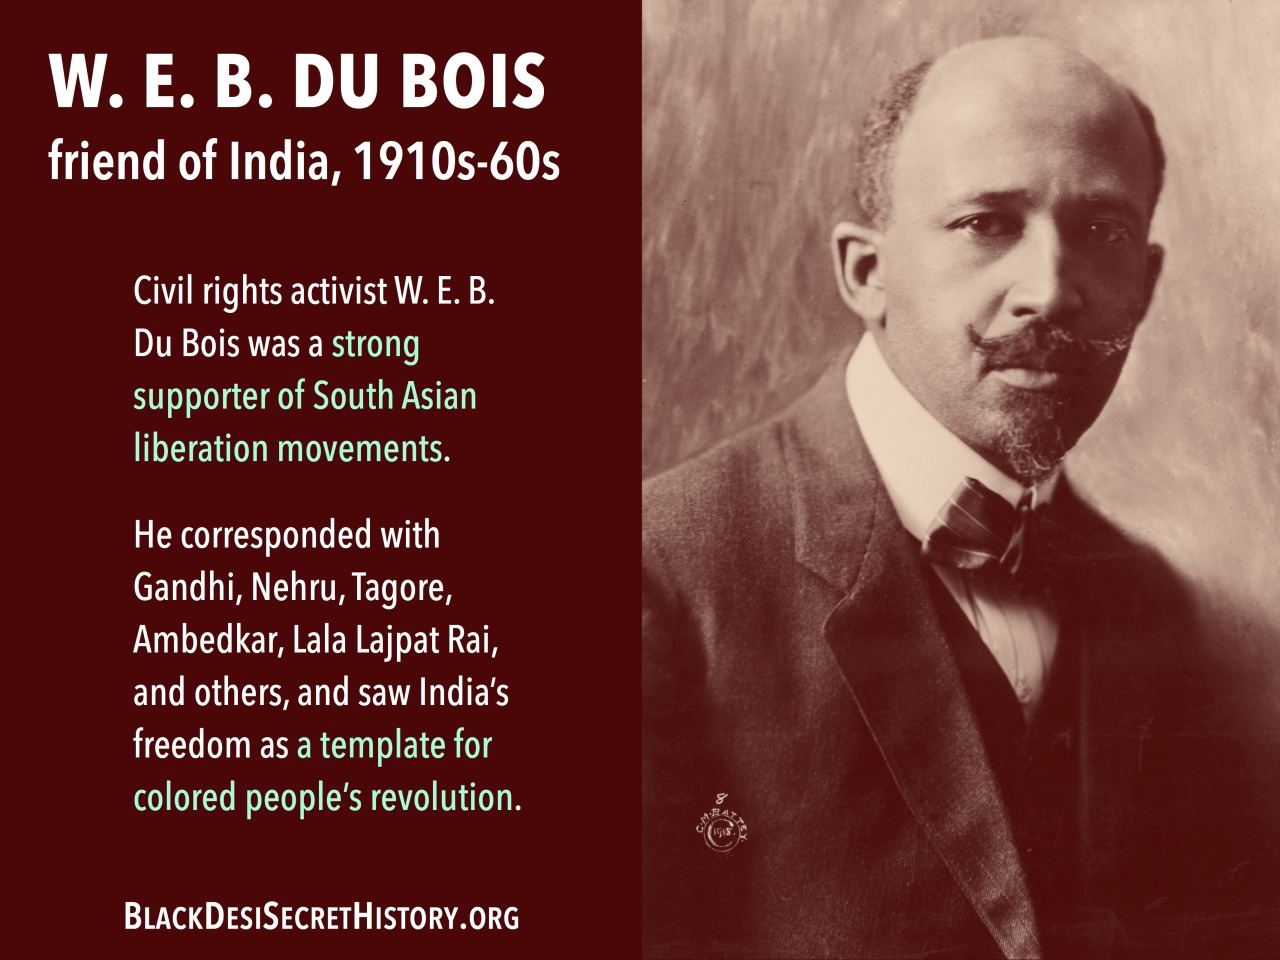 W. E. B. DU BOIS,